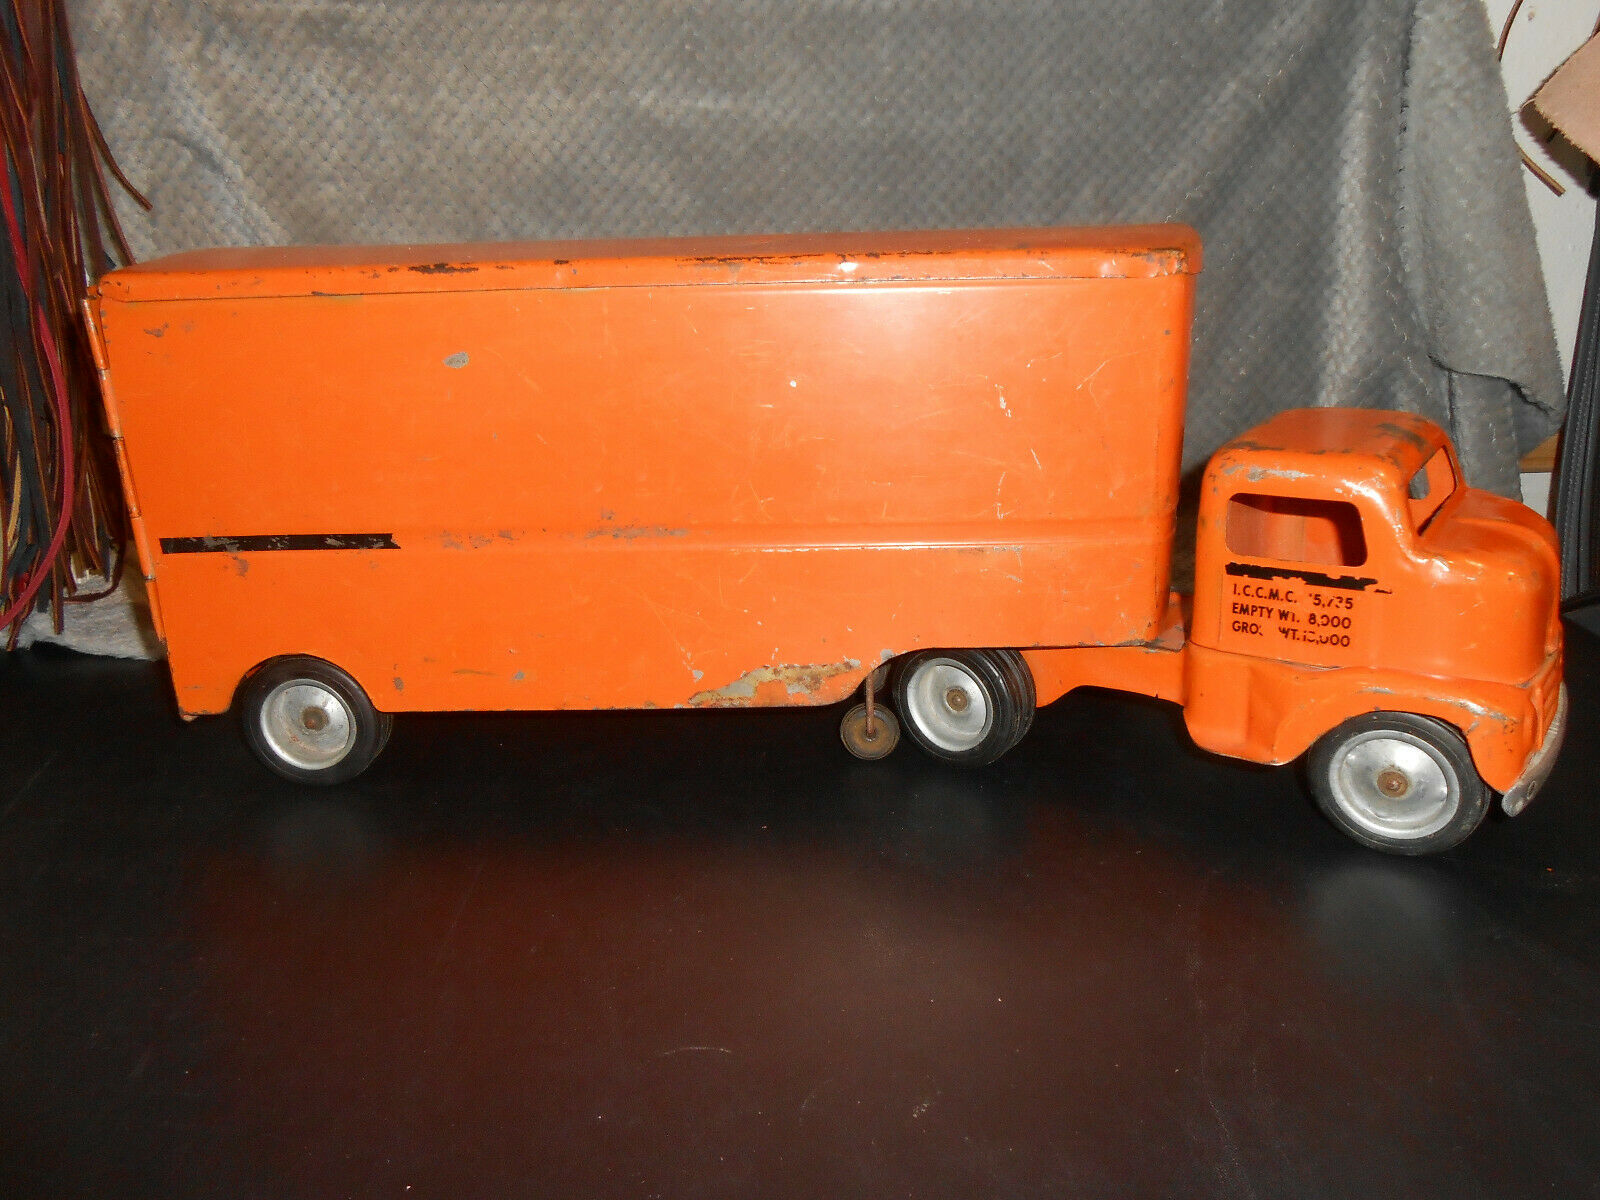 Used Die-Cast 1953 Allied Van-Lines Semi-Truck in Excellent Condition.